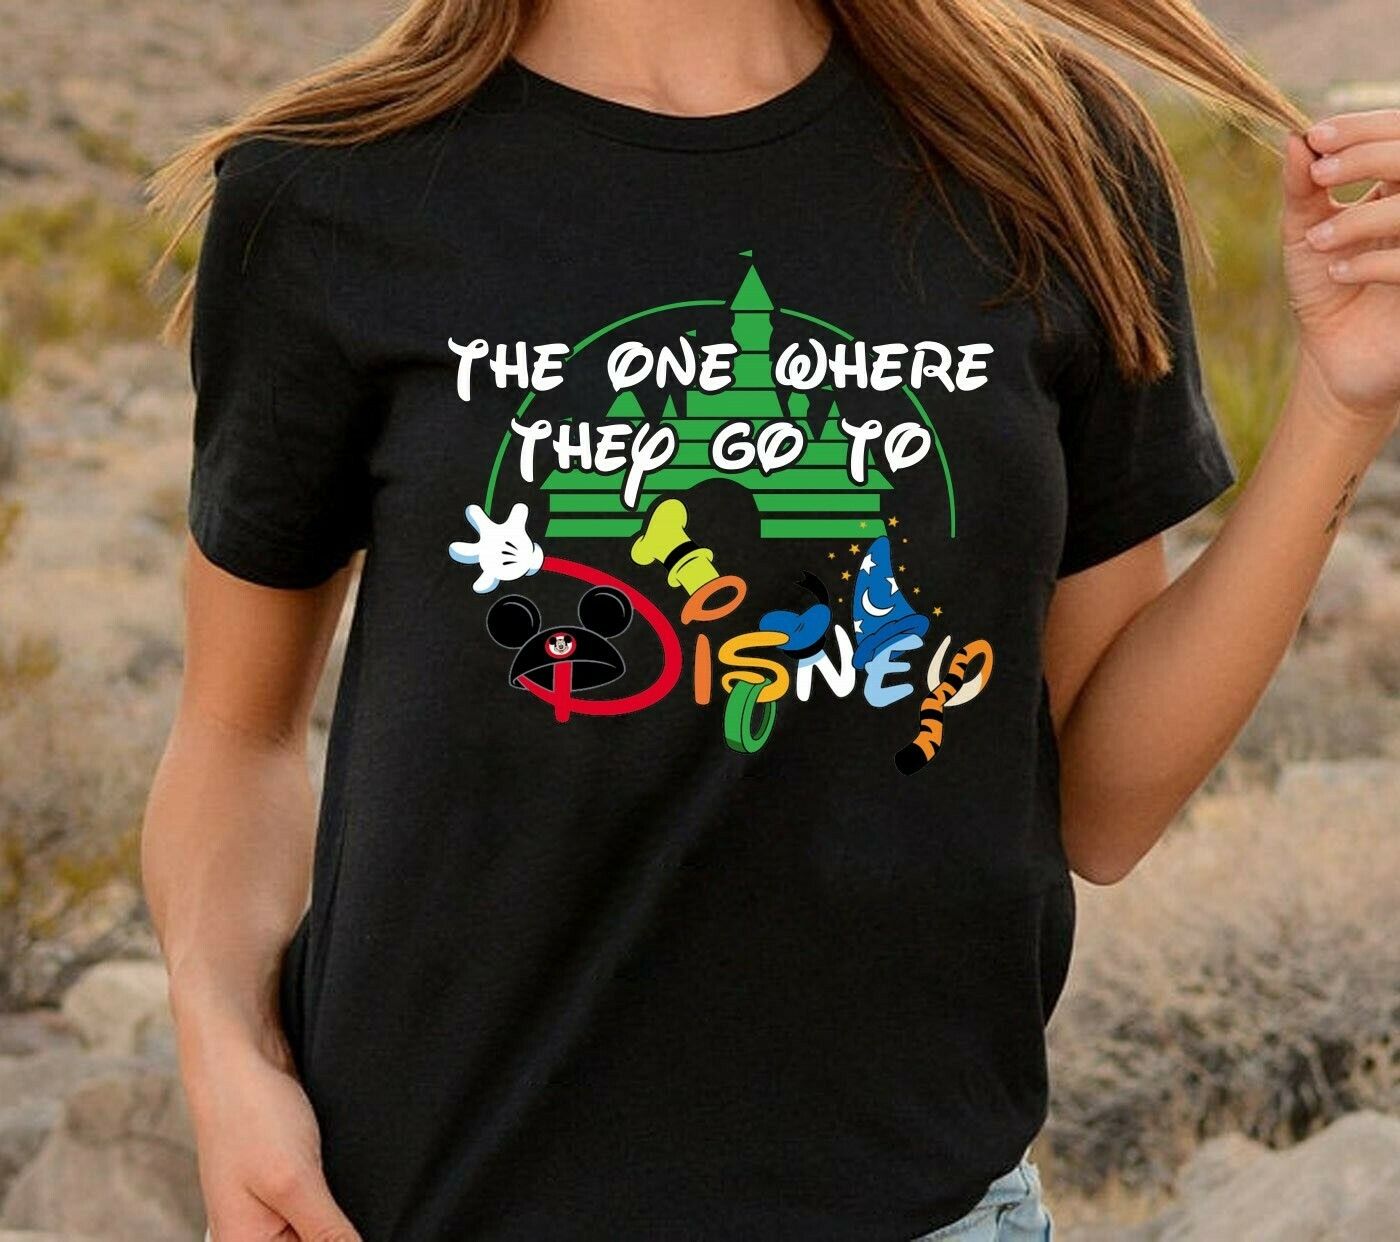 The one where they go to Disney Friends Inspired Disney World Family Trip Group Matching Friends  T-Shirt Hoodie Sweatshirt Sweater Tee Kids Youth Gifts Jolly Family Gifts